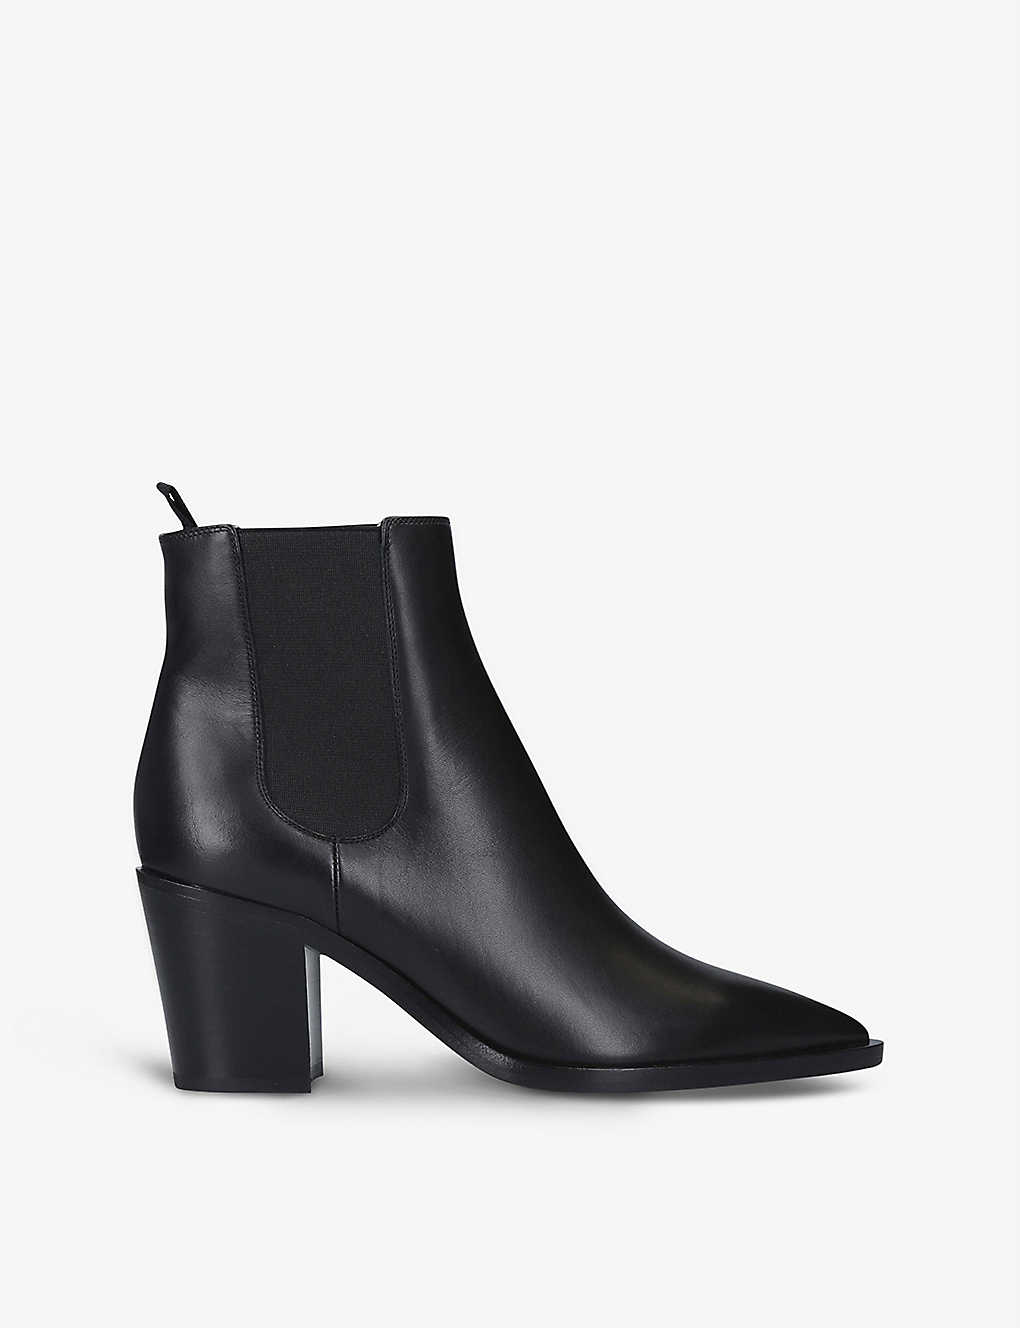 GIANVITO ROSSI: Romney 70 leather block-heel ankle boots